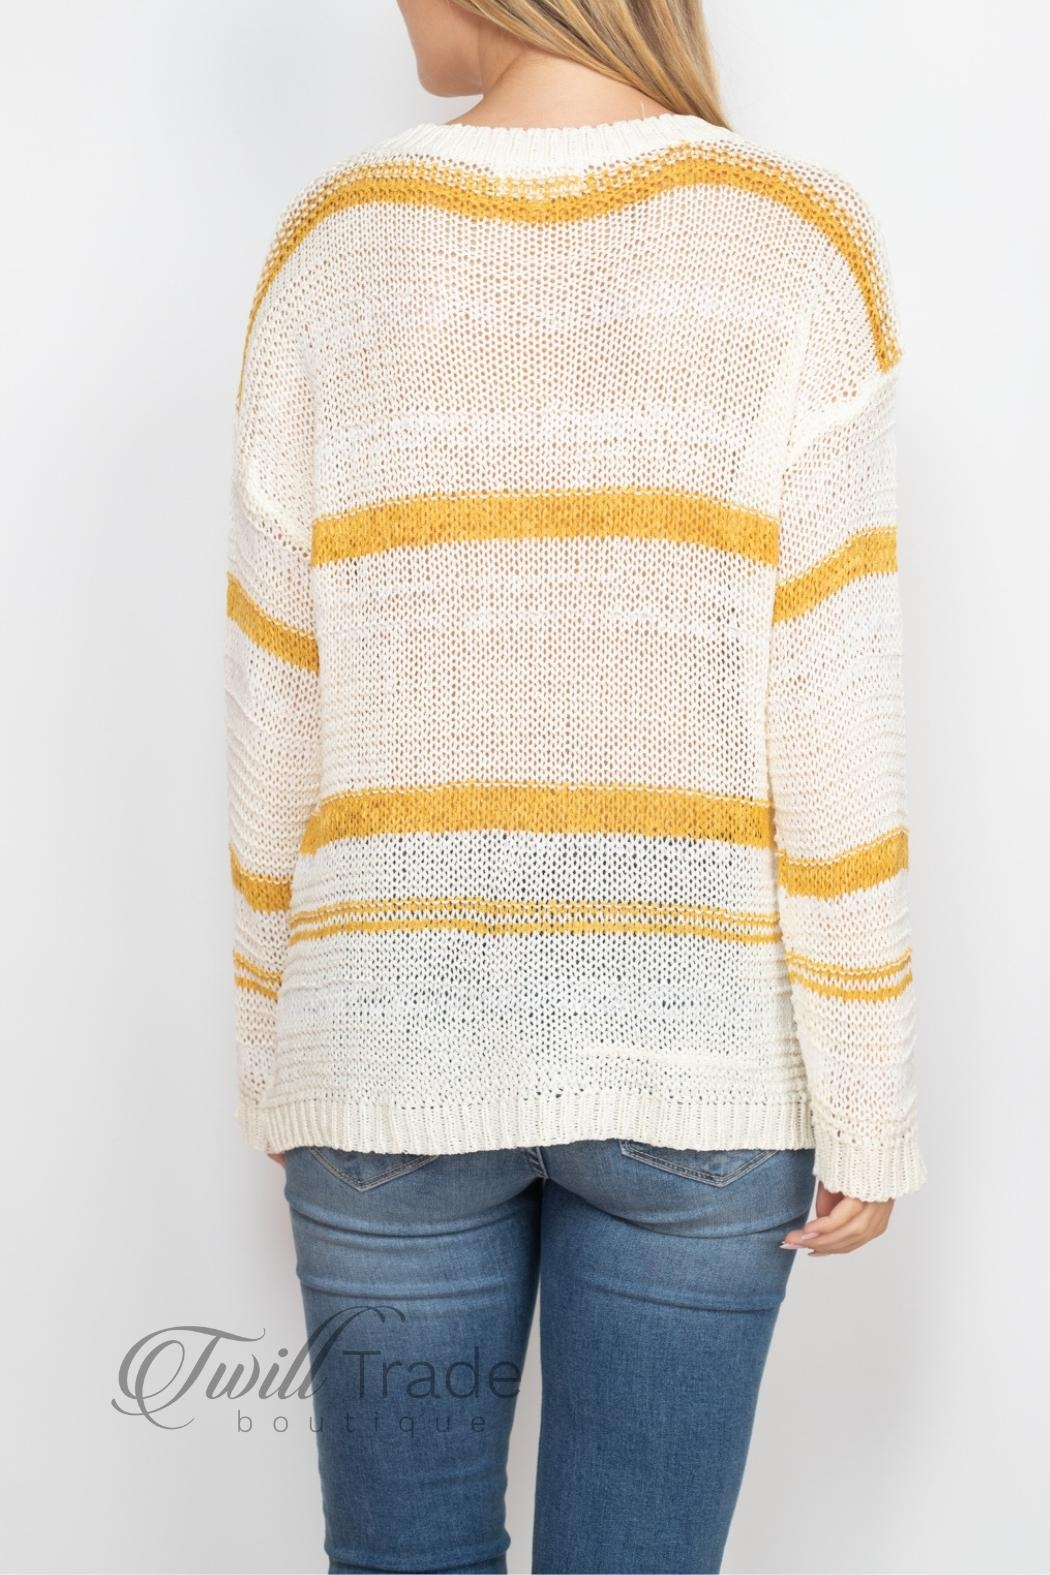 Unbranded Ivory Mustard Sweater - Back Cropped Image